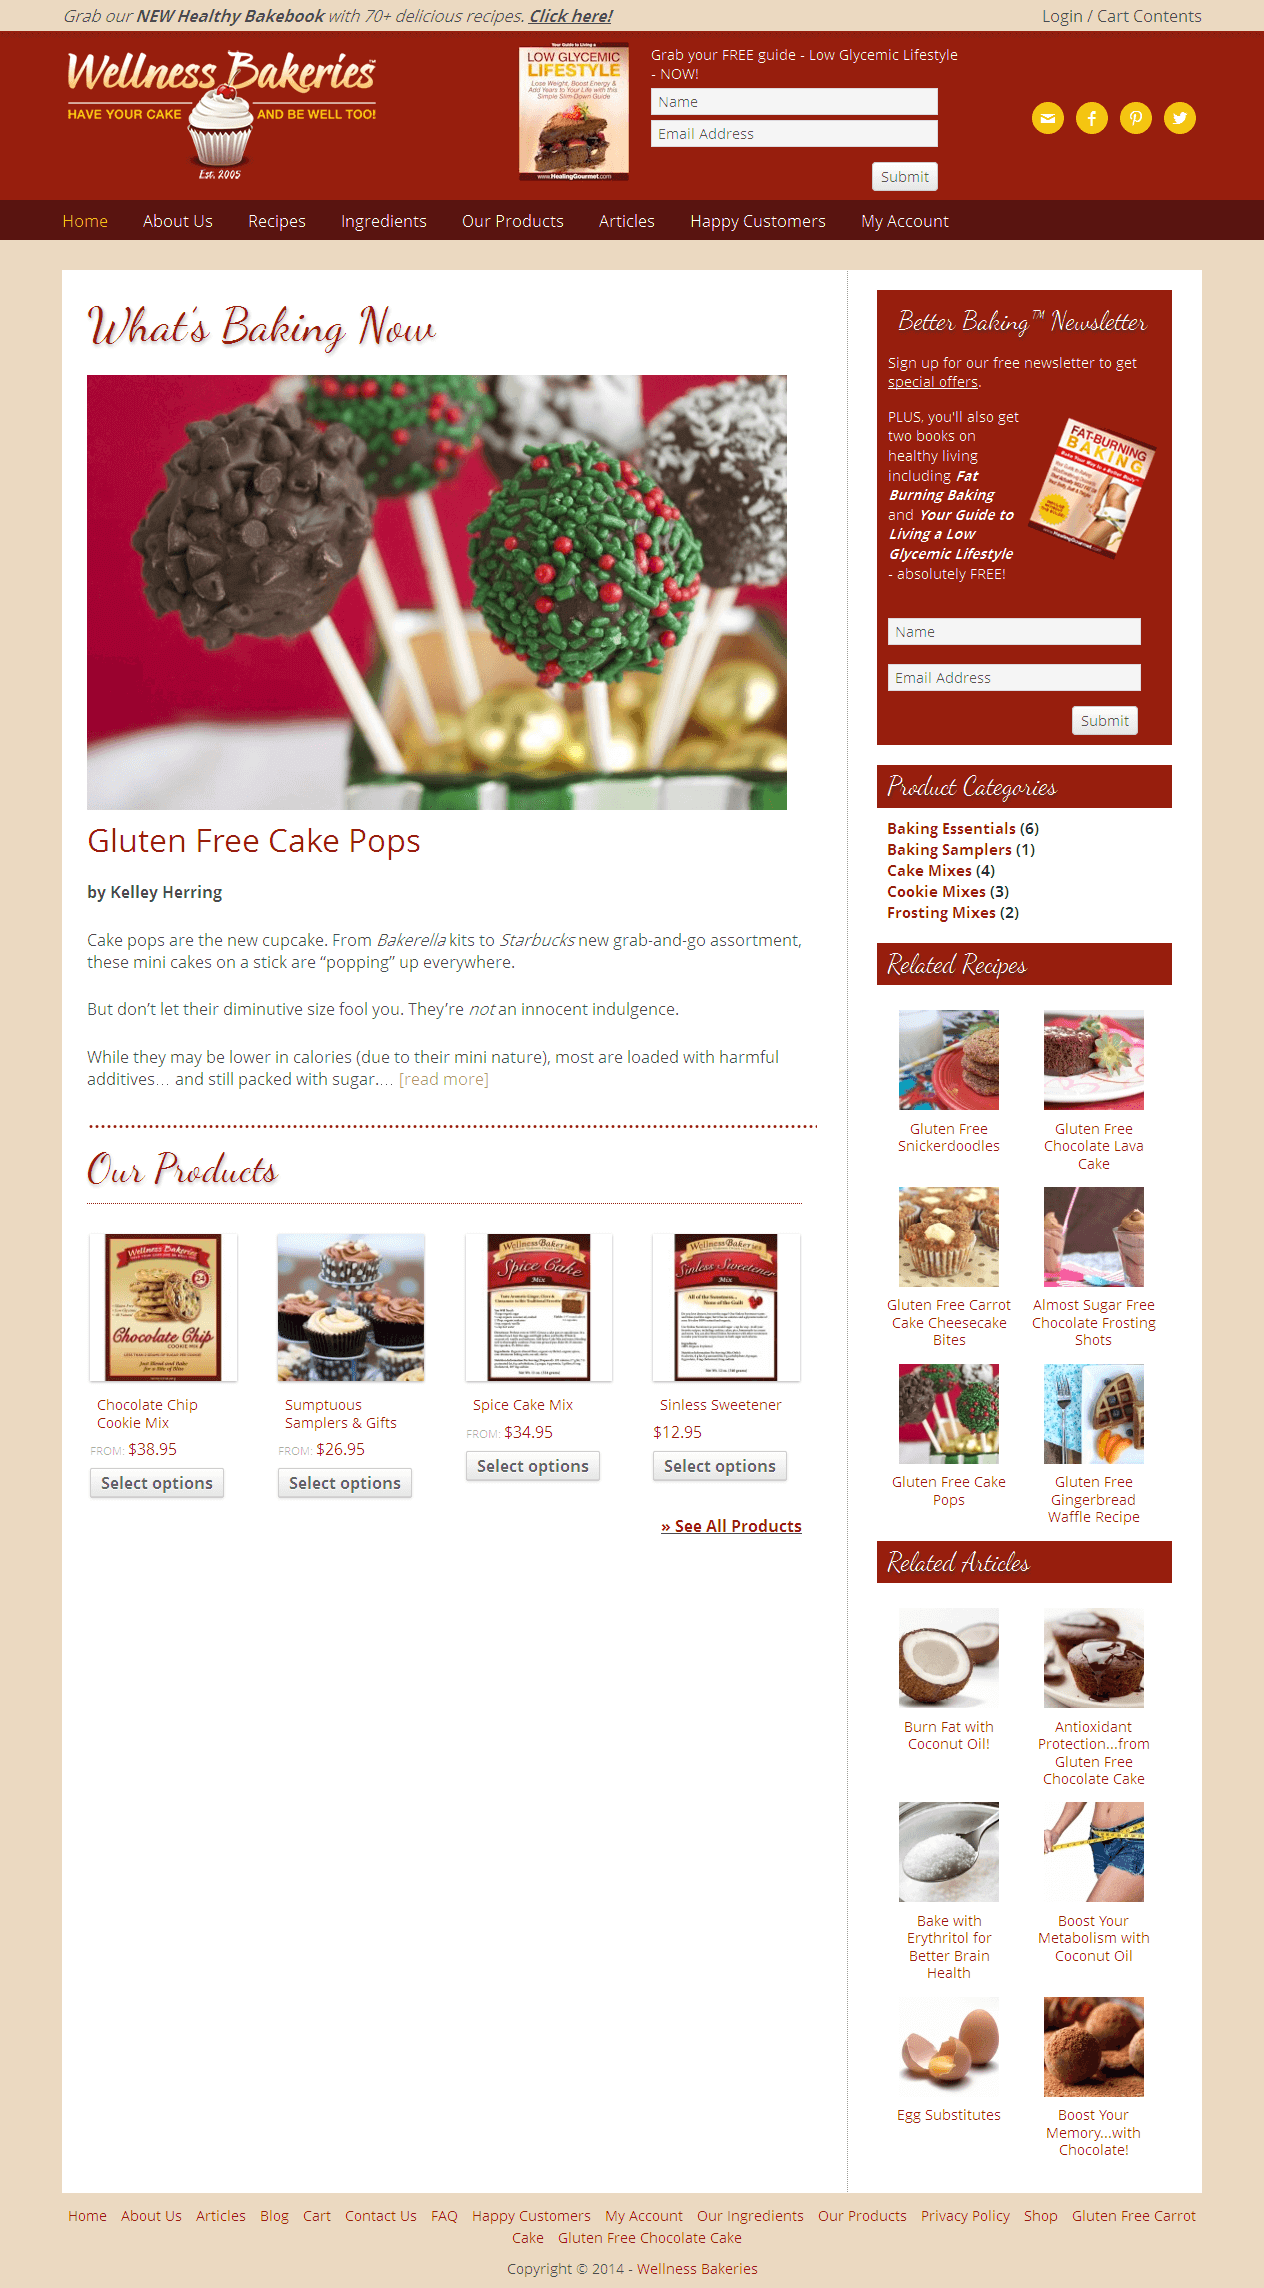 Making Enhancements in an e-commerce Site for Bakery Products